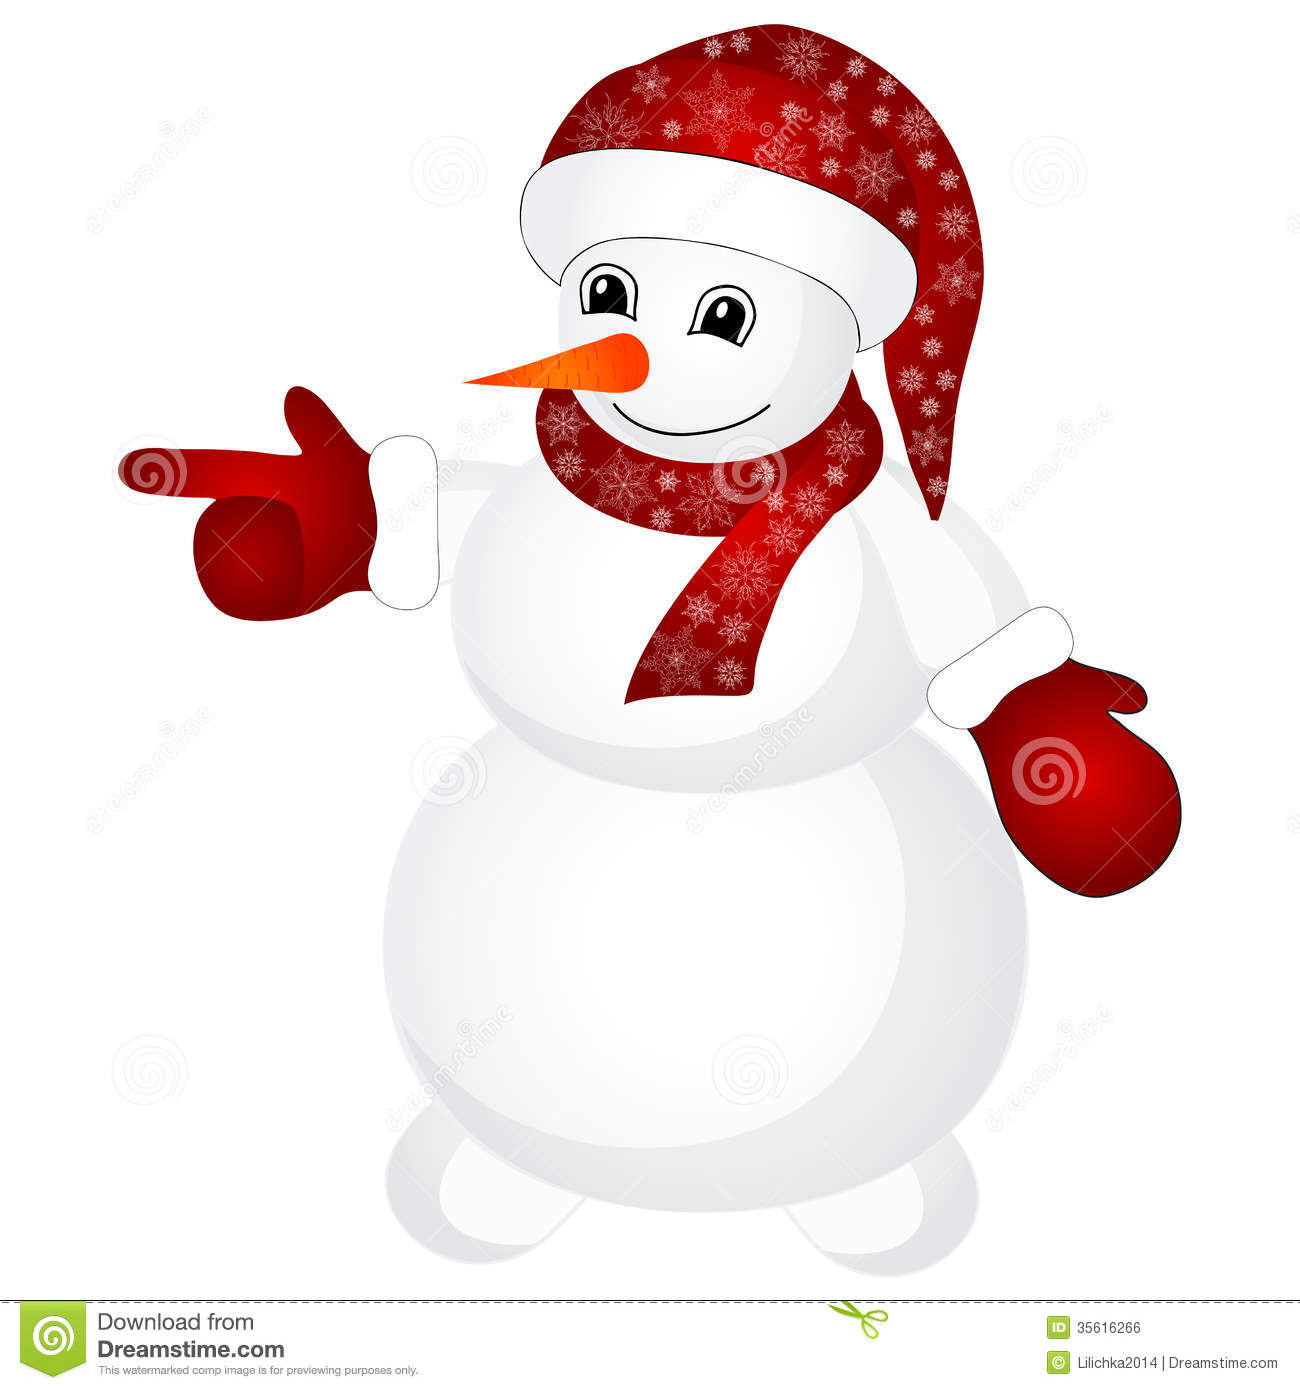 Snowman wearing santa hat isolated on the white background.